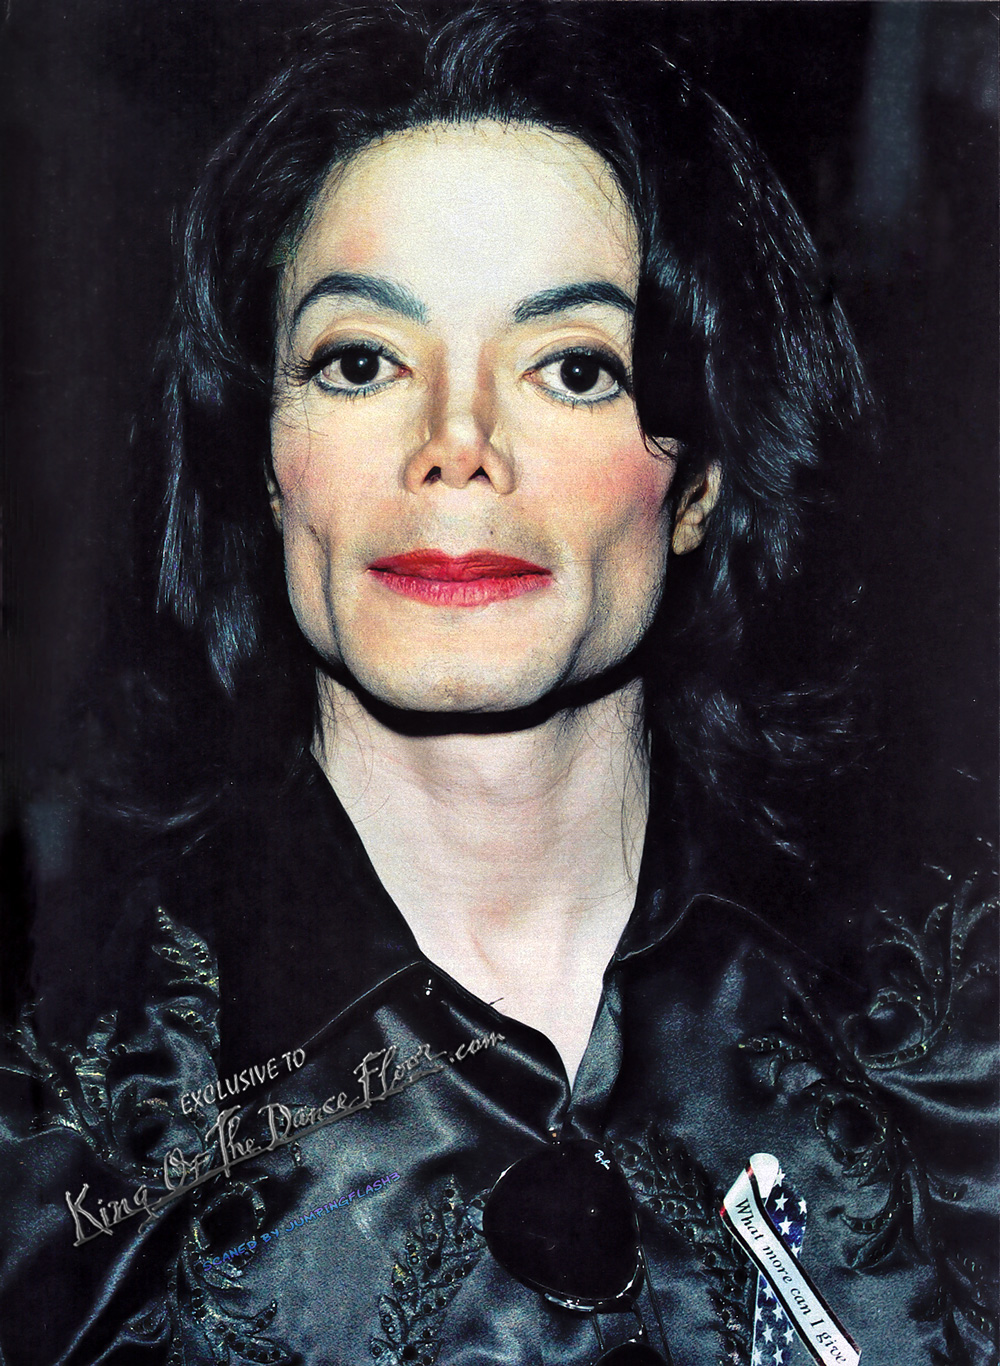 Michael-Jackson-Photoshoots-HQ-King-of-POP-michael-jackson-31018334-1000-1366